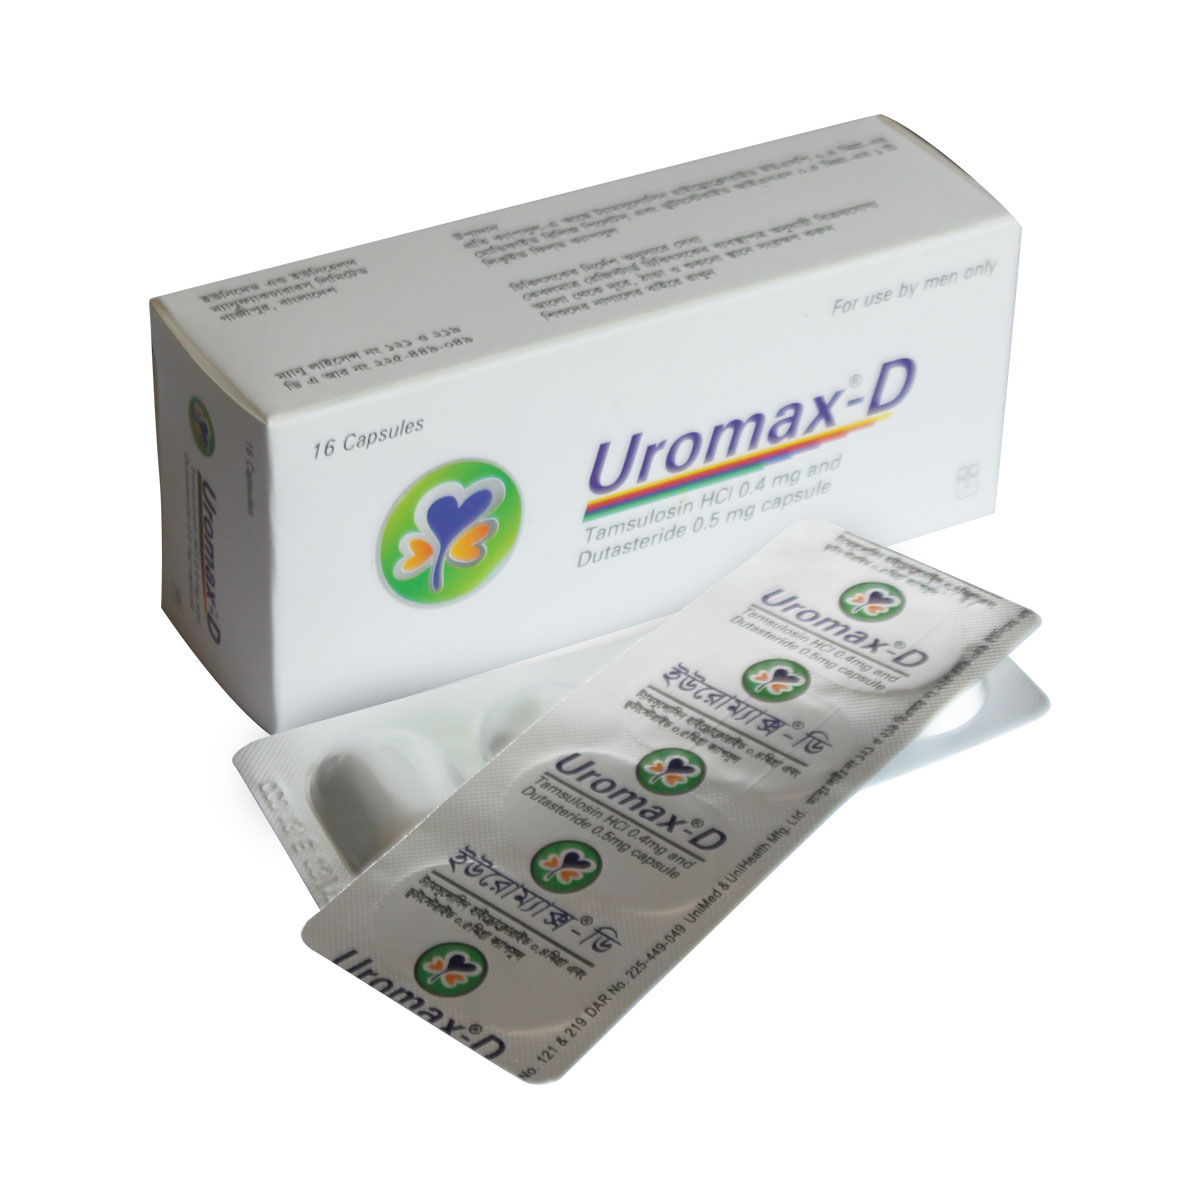 UROMAX-D